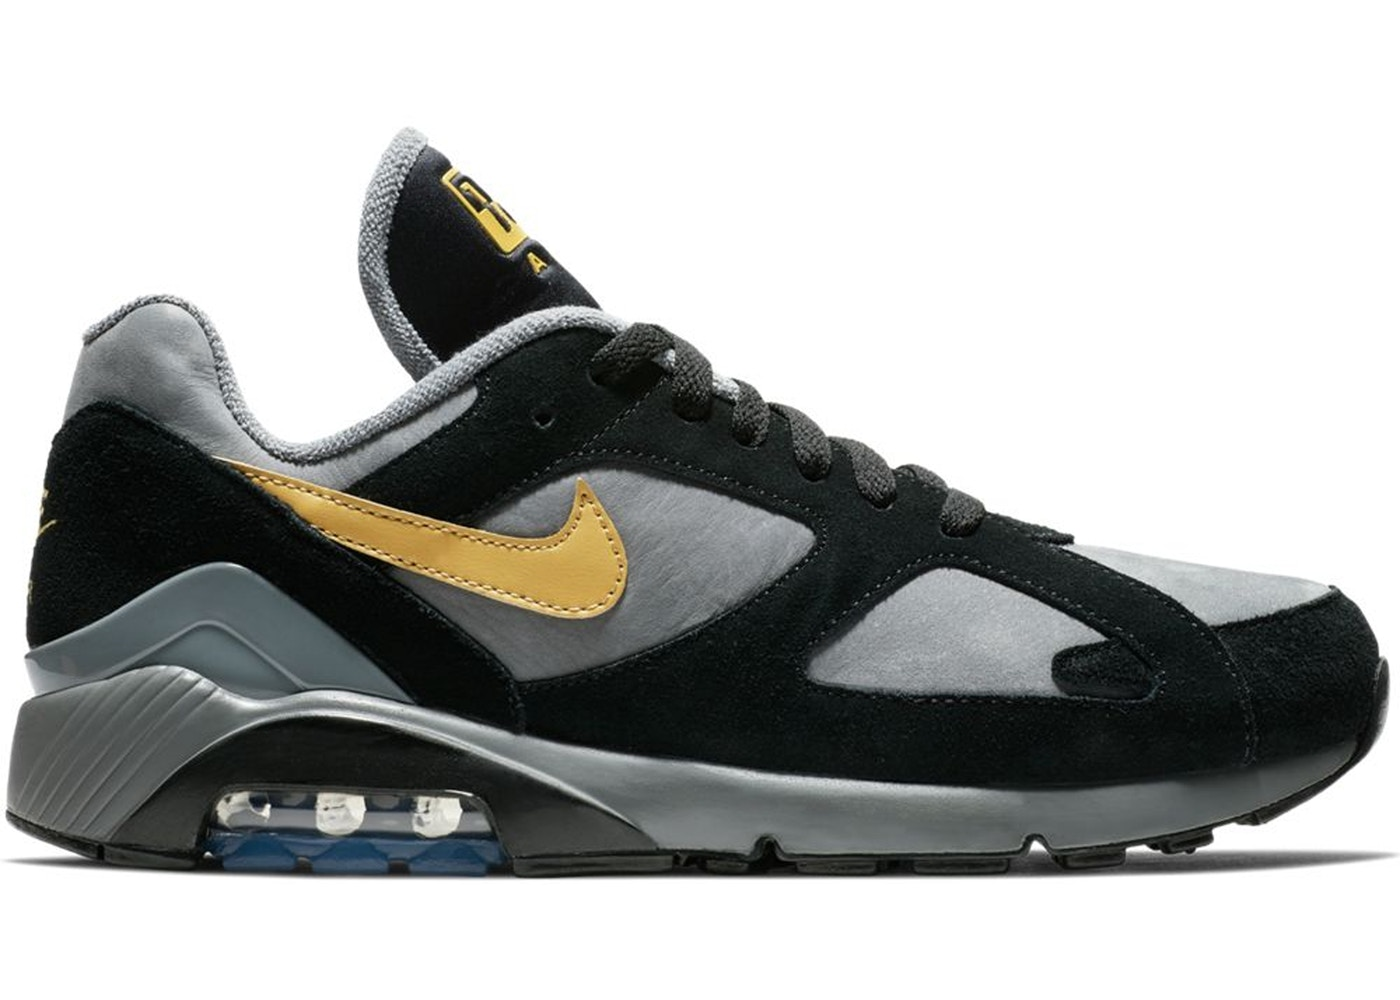 288ada3400 Sell. or Ask. Size: 10. View All Bids. Air Max 180 Cool Grey Black Wheat  Gold